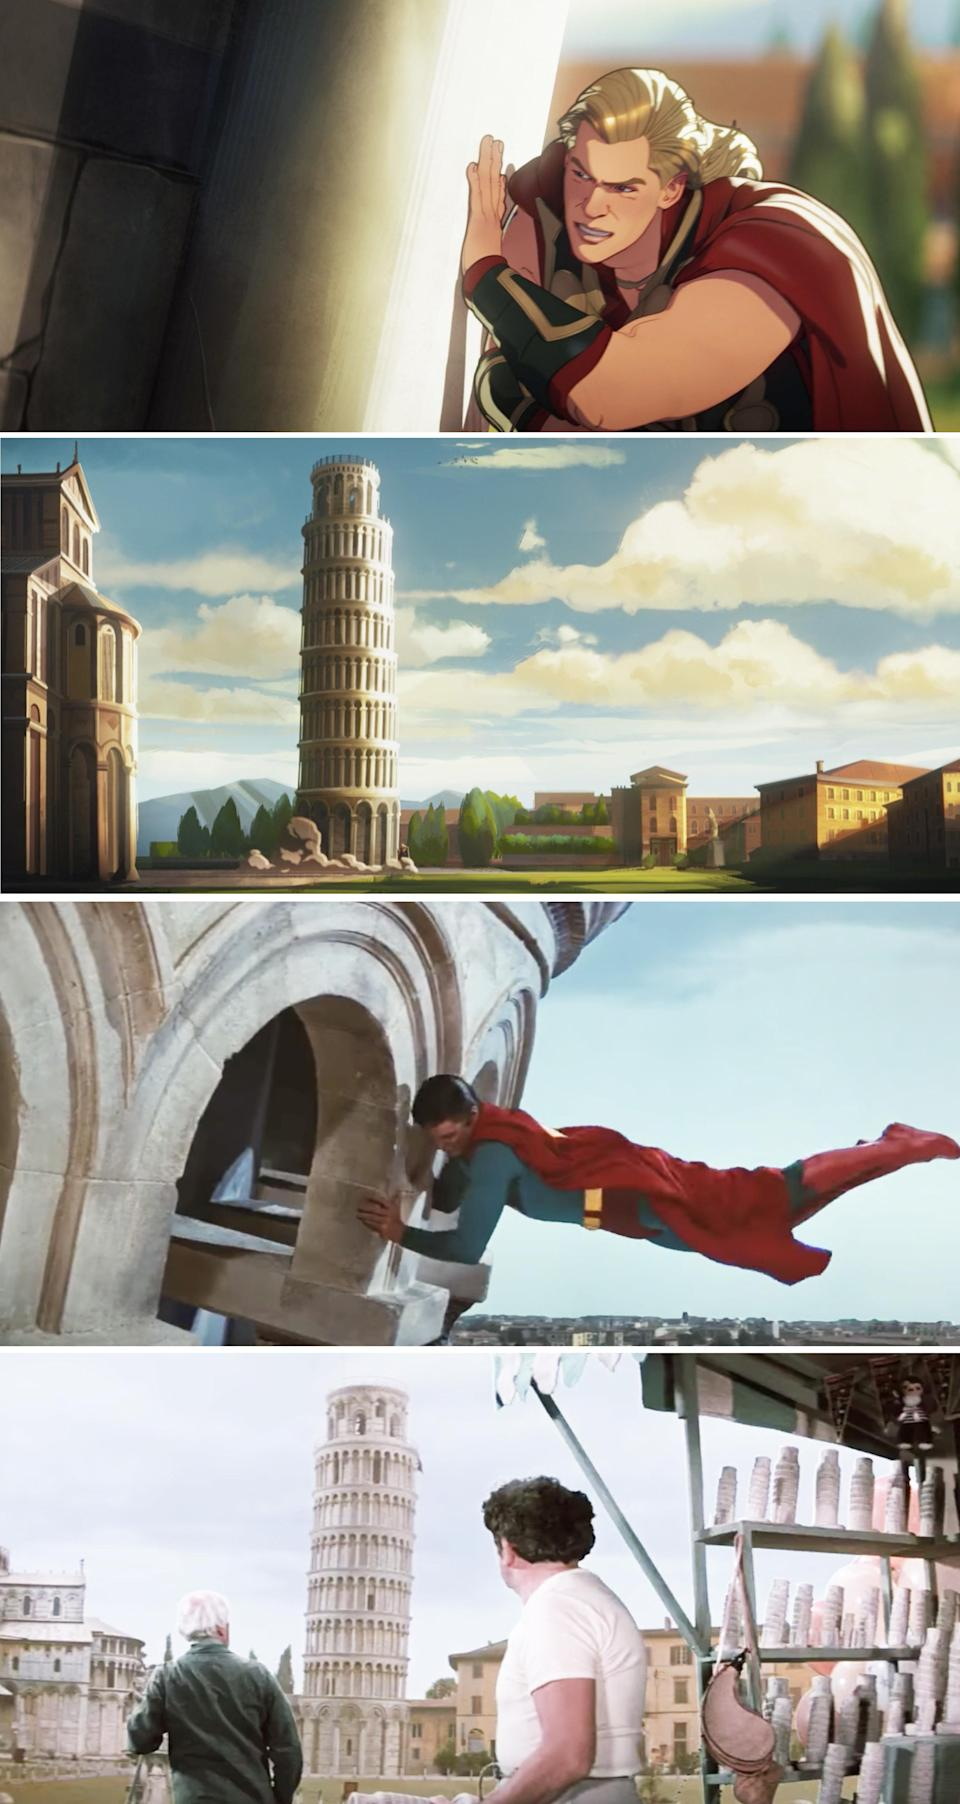 Thor pushing the Leaning Tower of Pisa vs Superman doing the same